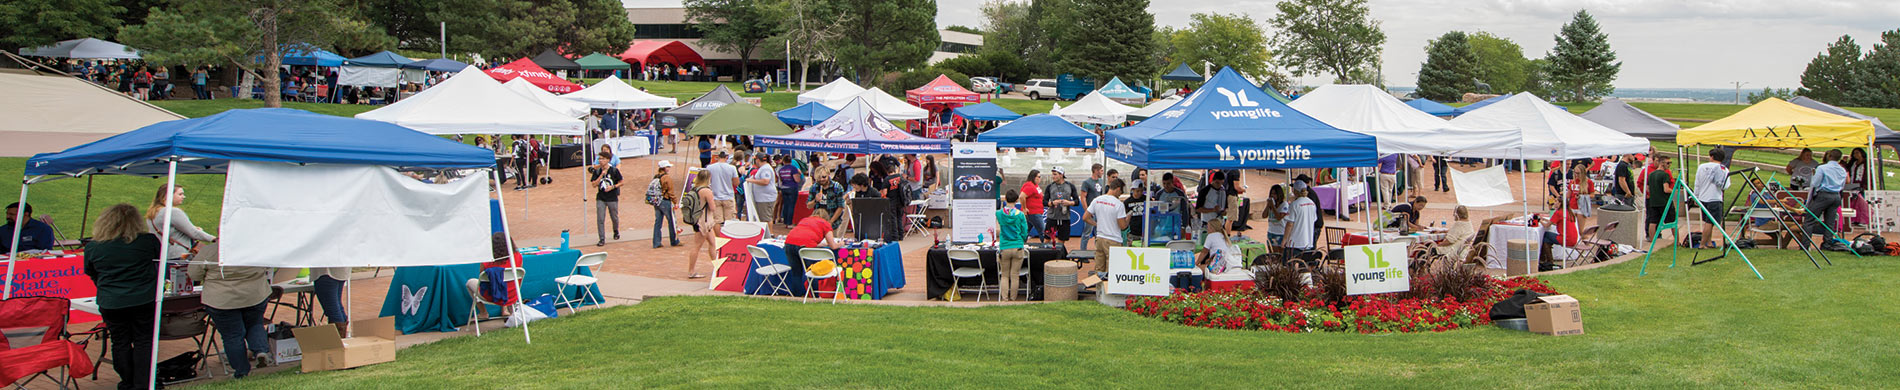 Student Employment and Involvement Festival on the campus of Colorado State University-Pueblo